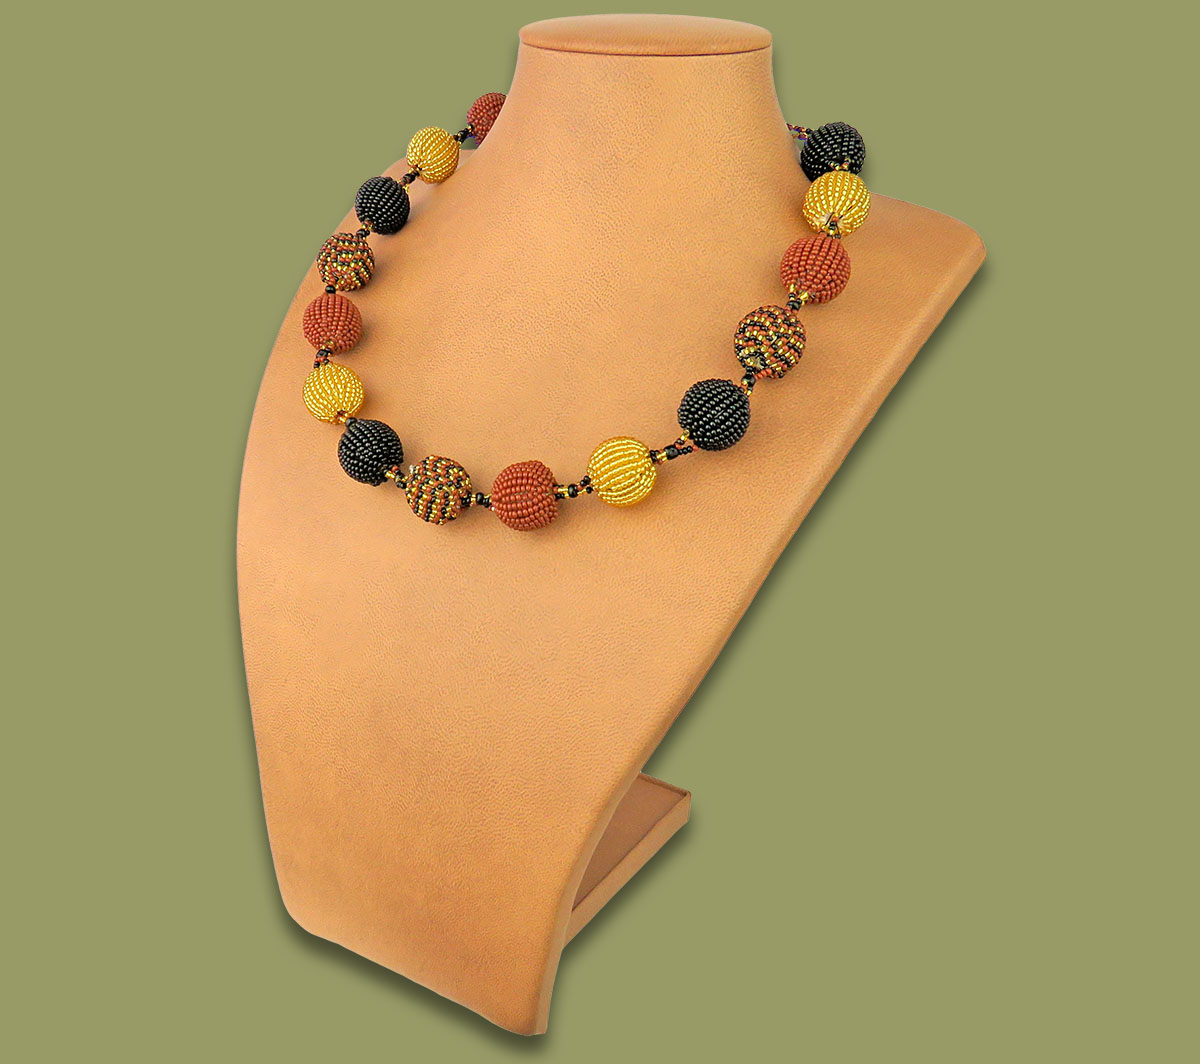 African Beaded Bobble Necklace Gold Brown Black